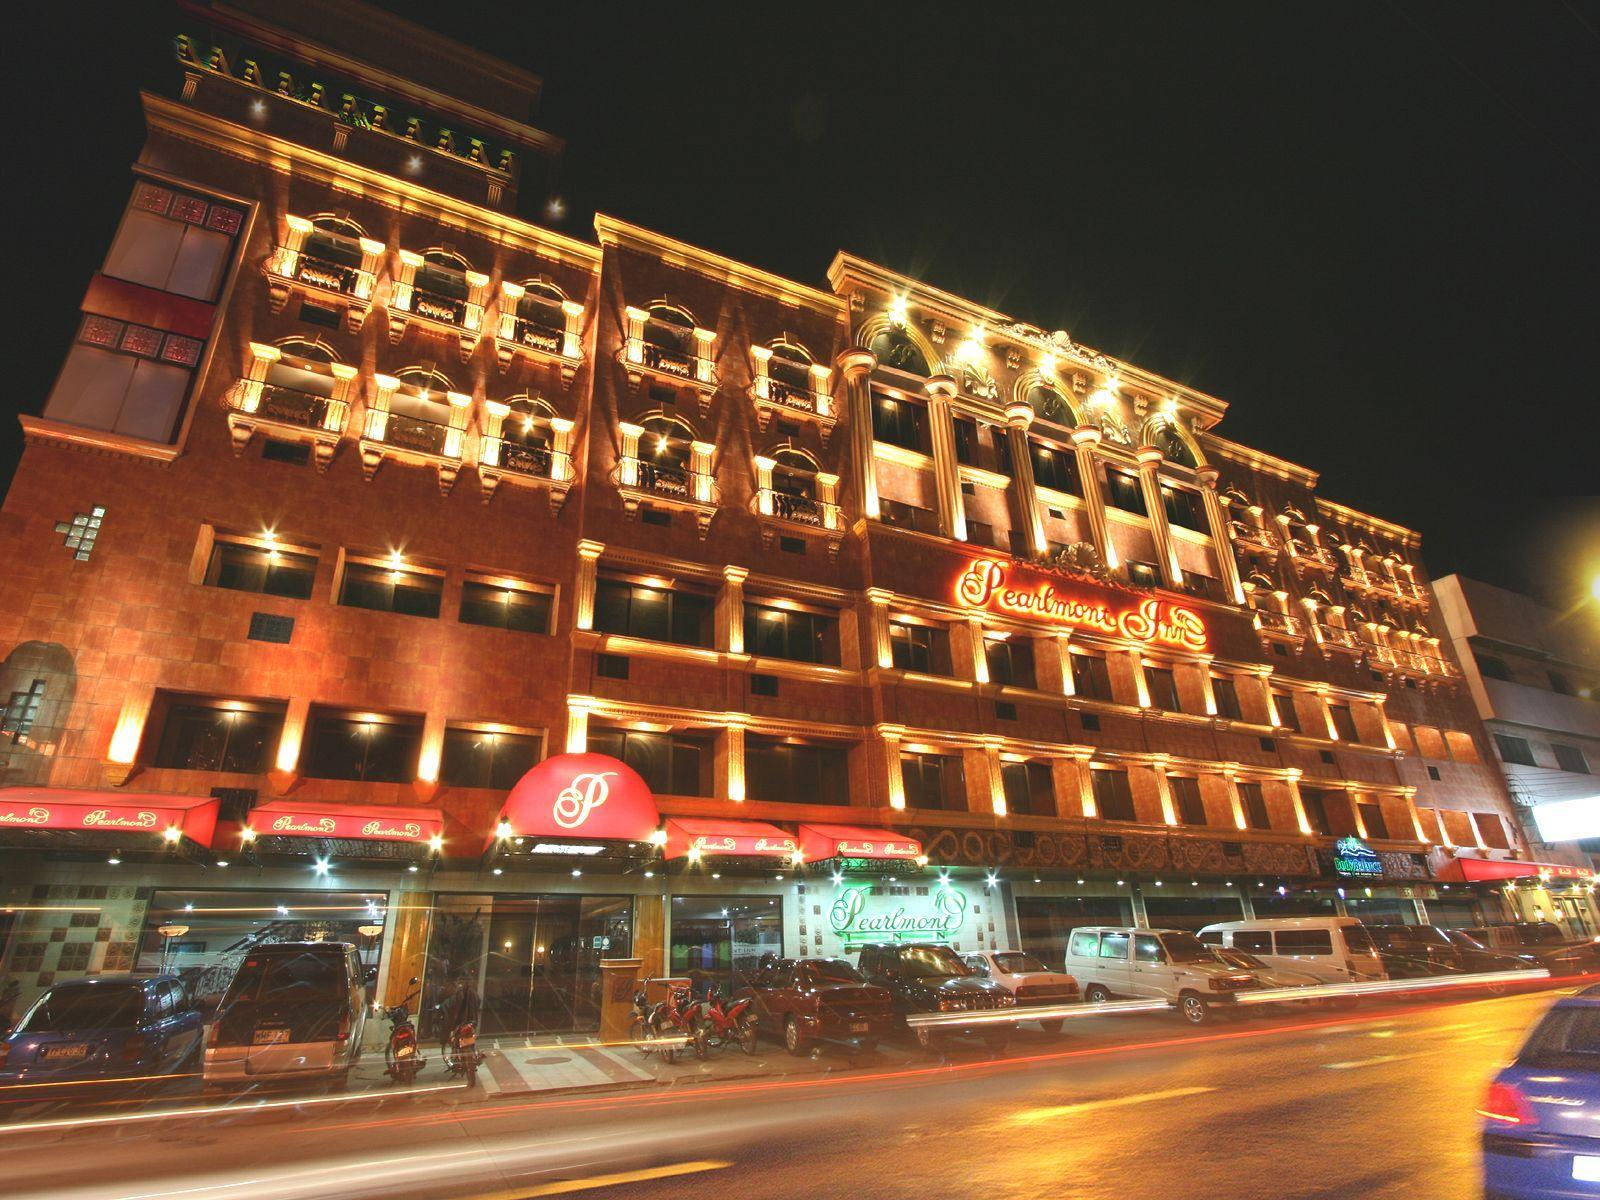 Pearlmont Hotel